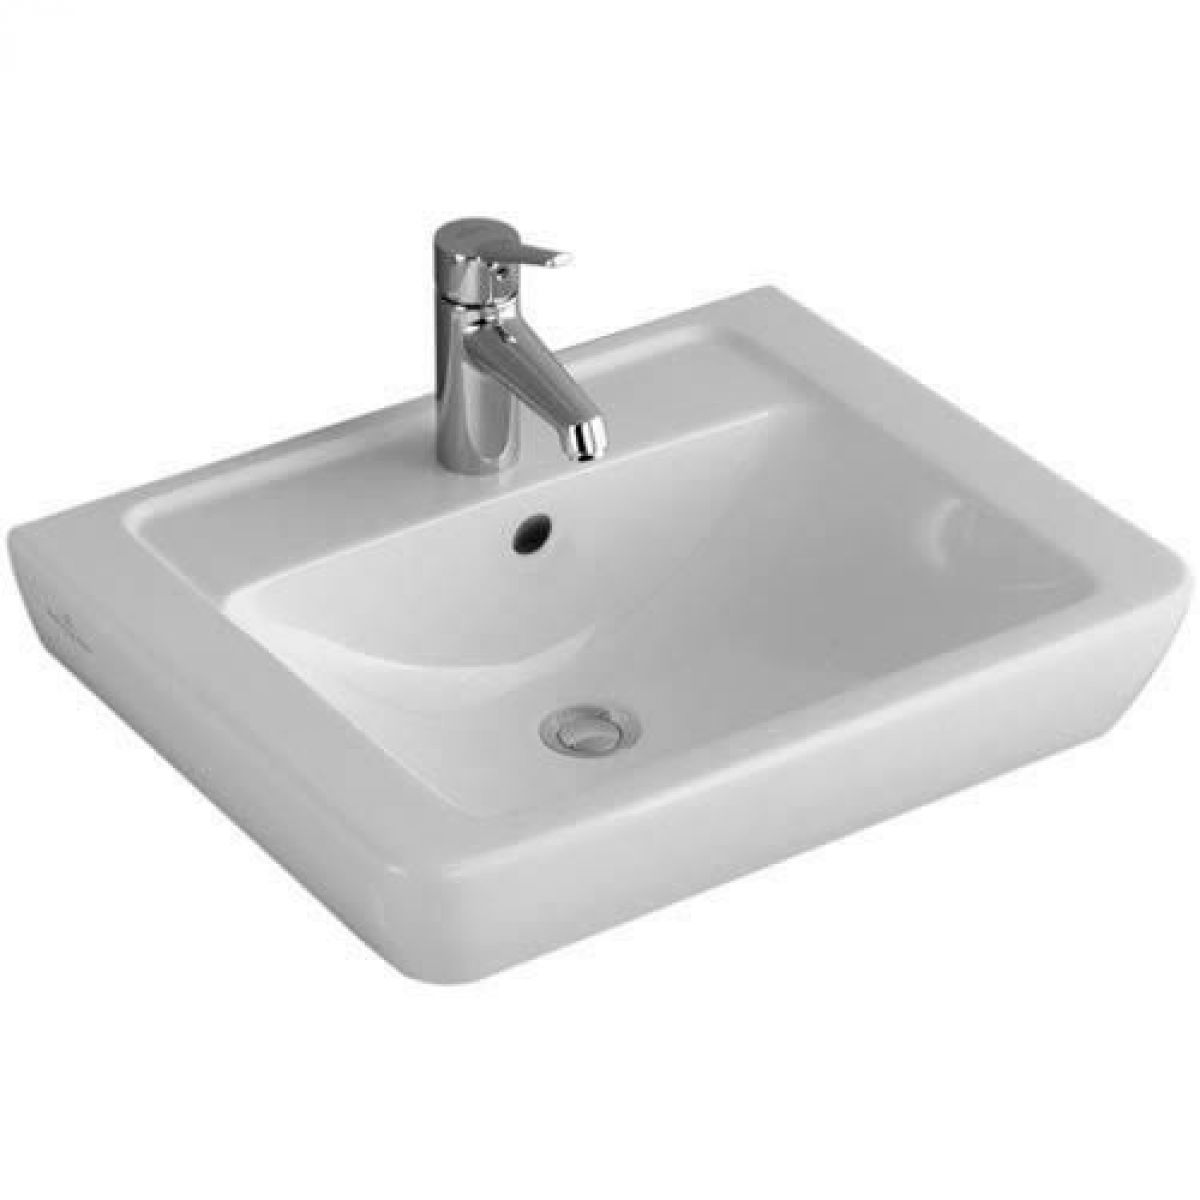 Villeroy and boch bathroom sink -  Villeroy Boch Subway Washbasin